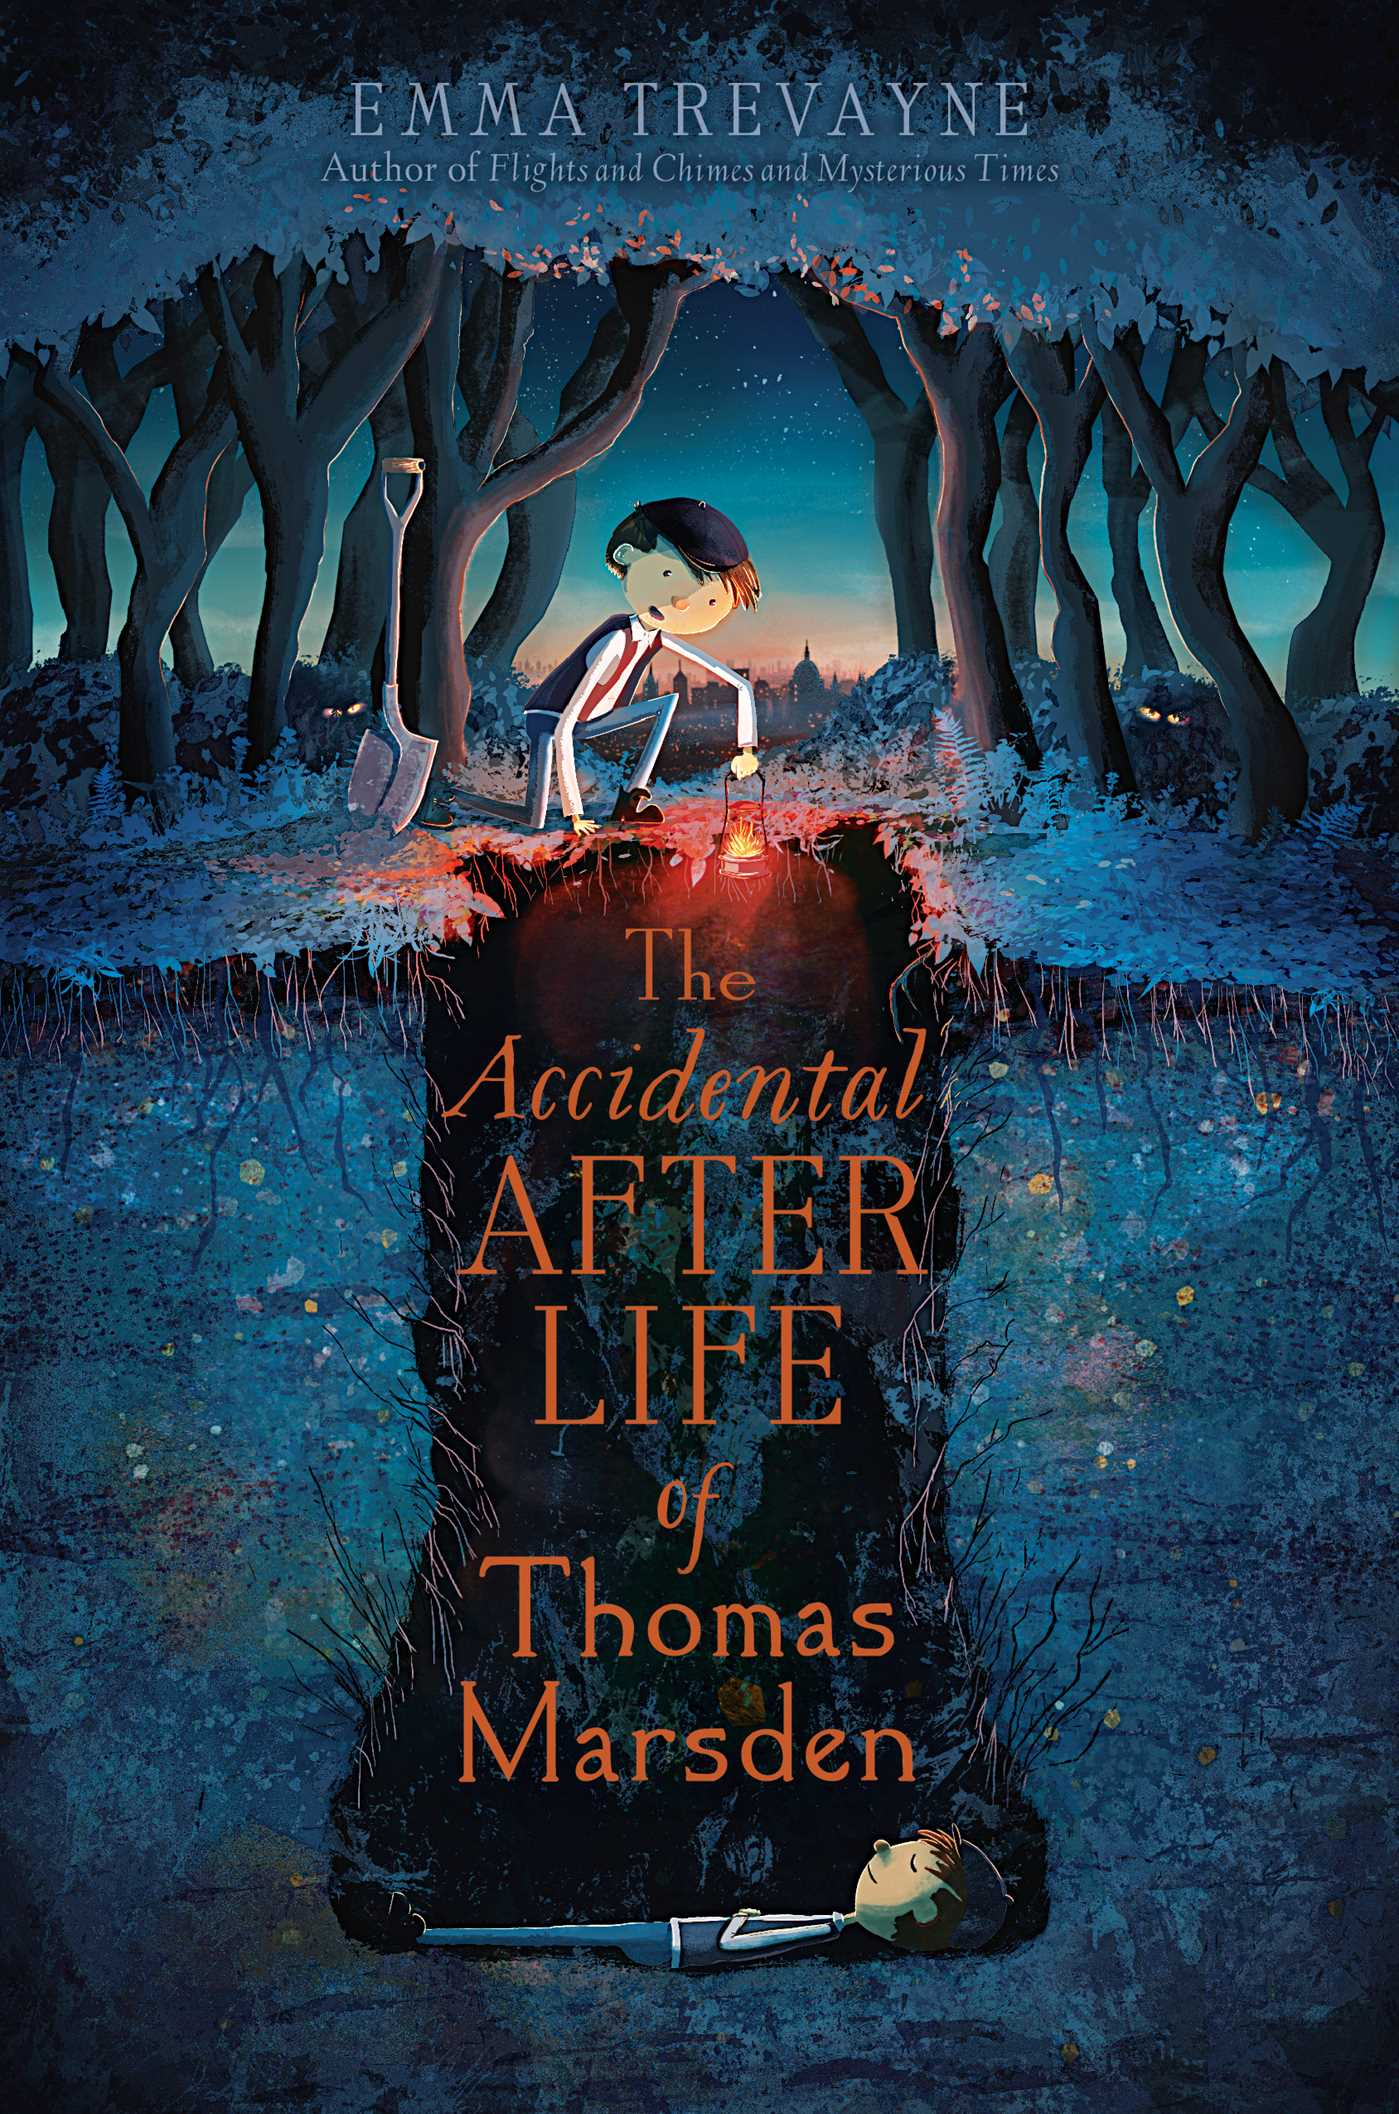 The accidental afterlife of thomas marsden 9781442498846 hr